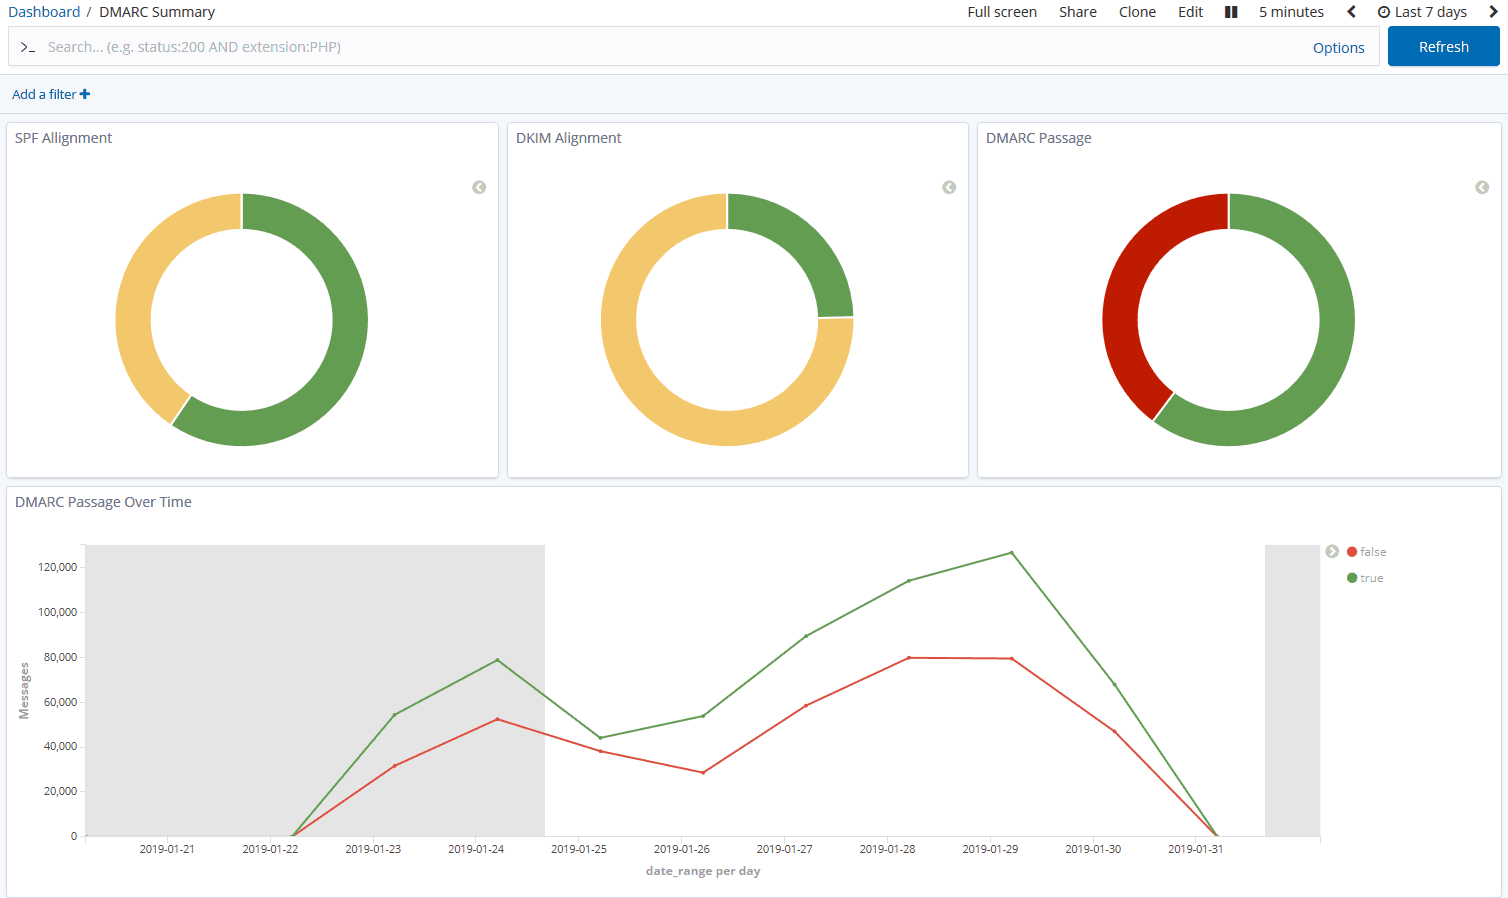 A screenshot of a premade aggreate/summary DMARC dashboard in ELK using data from pardeemarc